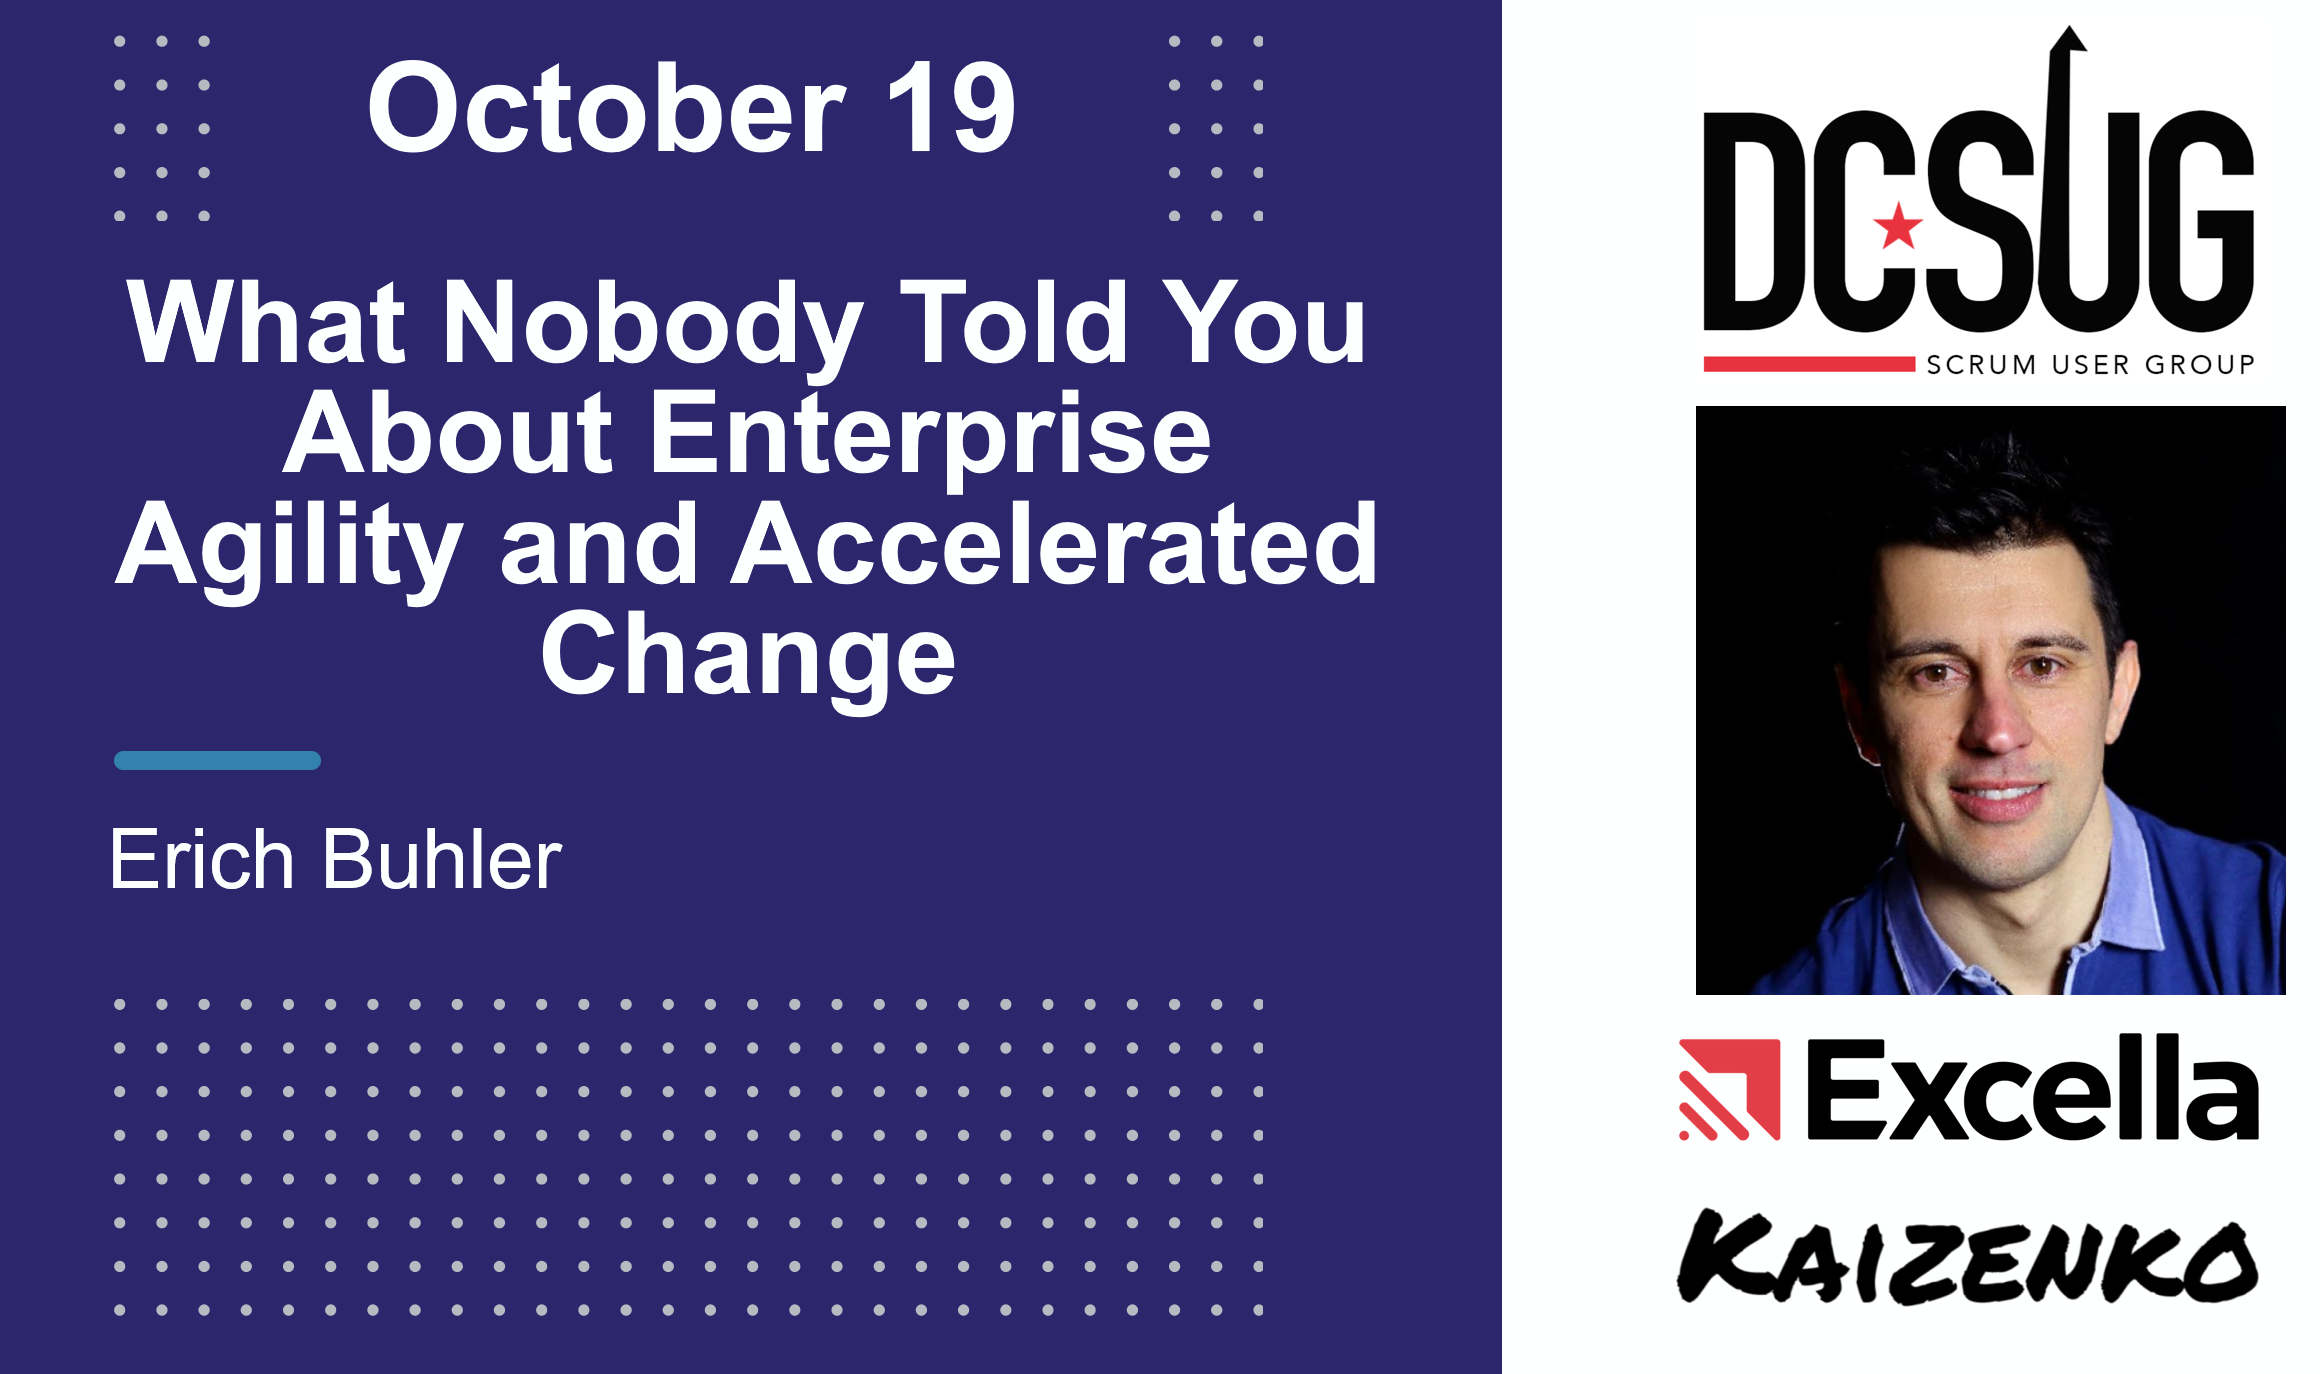 What Nobody Told You About Enterprise Agility And Accelerated Change by Erich Buhler at the DC Scrum User Group (DCSUG)